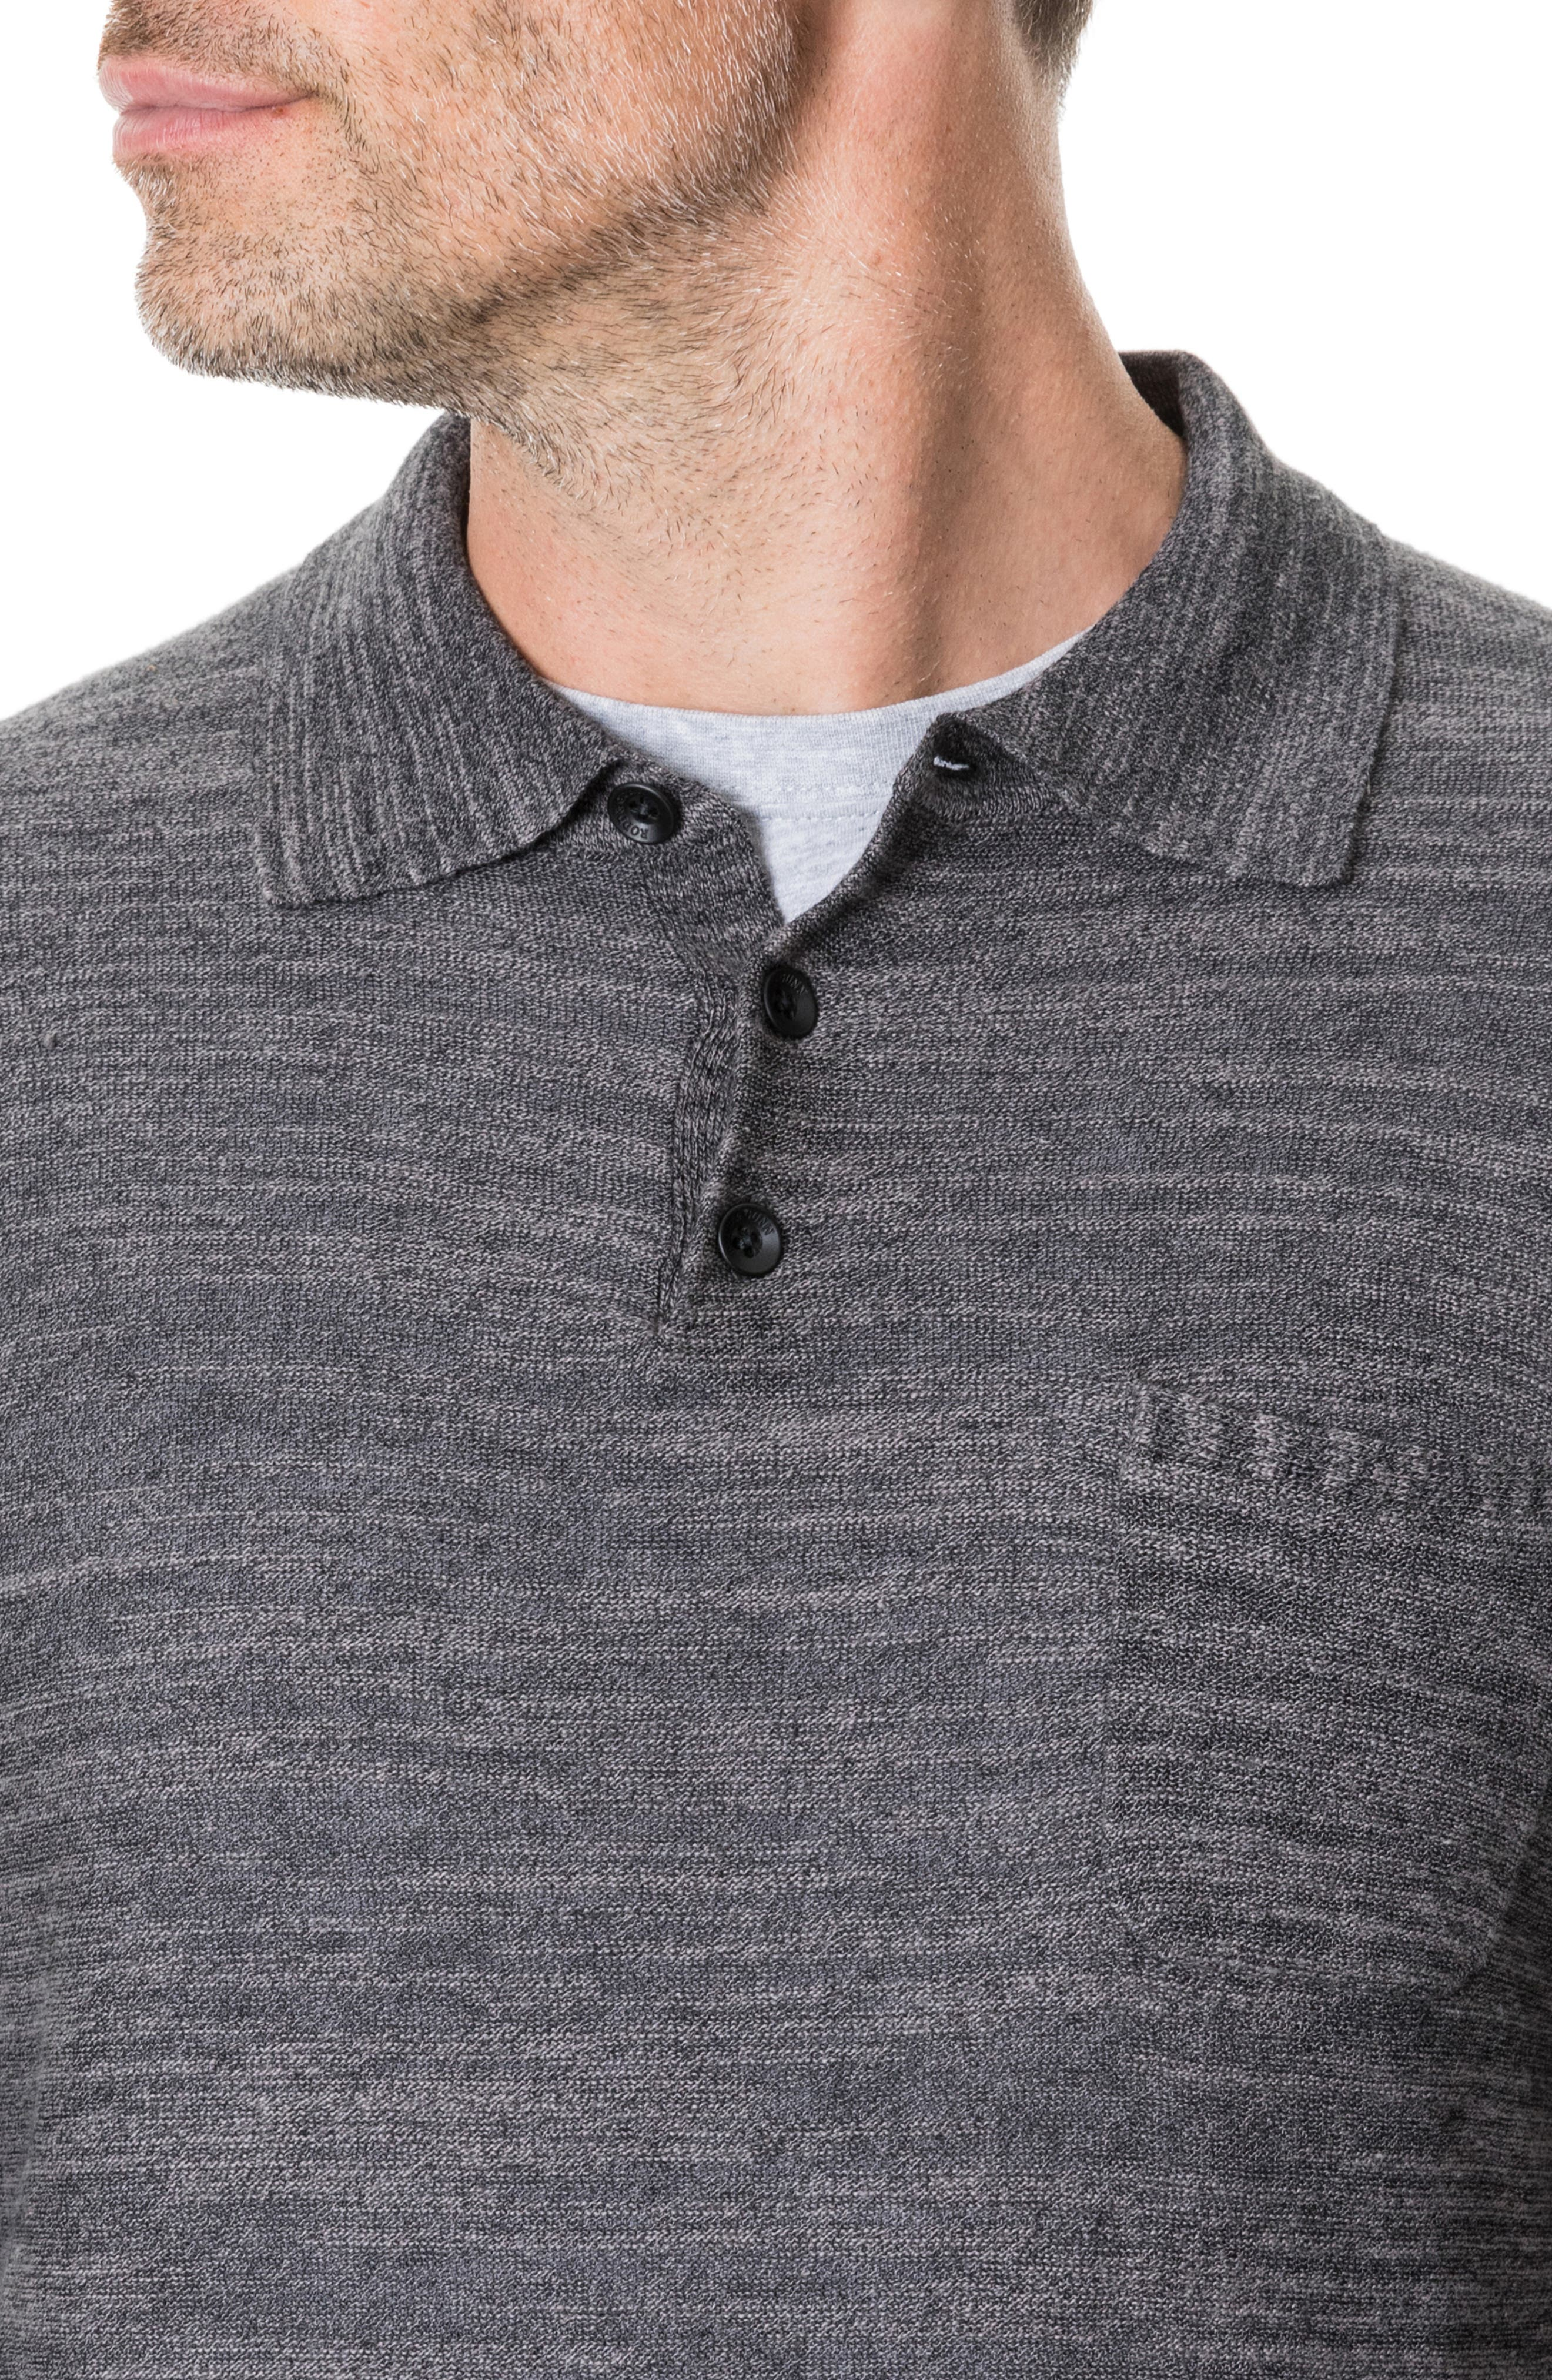 Barret Reef Long Sleeve Polo,                             Alternate thumbnail 4, color,                             CHARCOAL